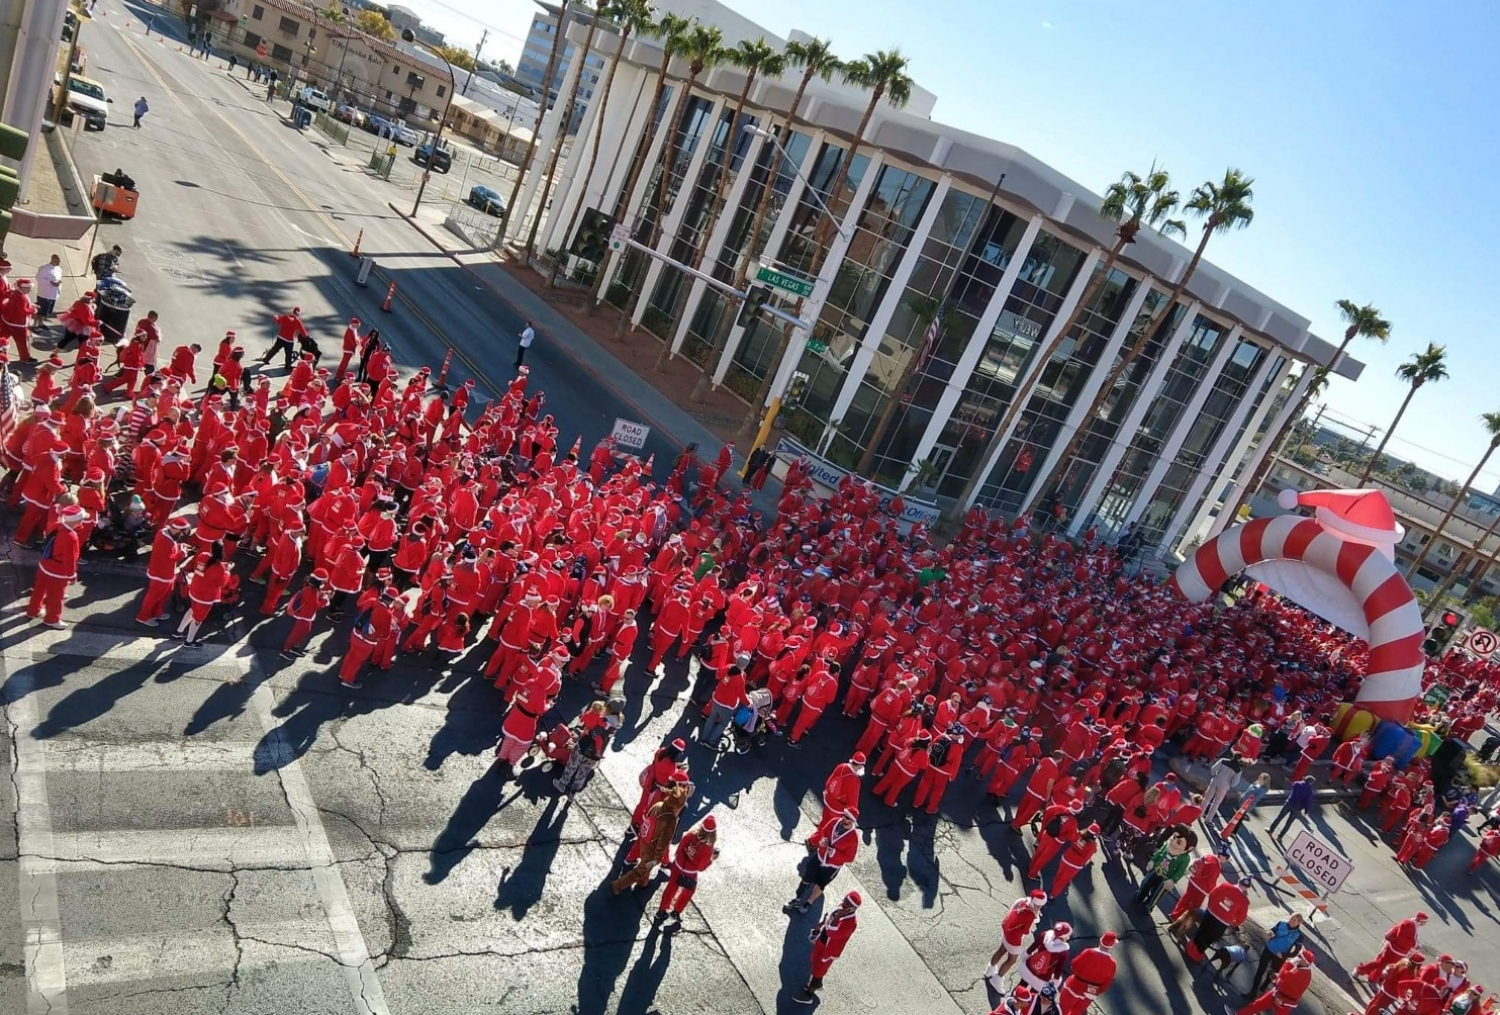 Great Santa Run Las Vegas from top